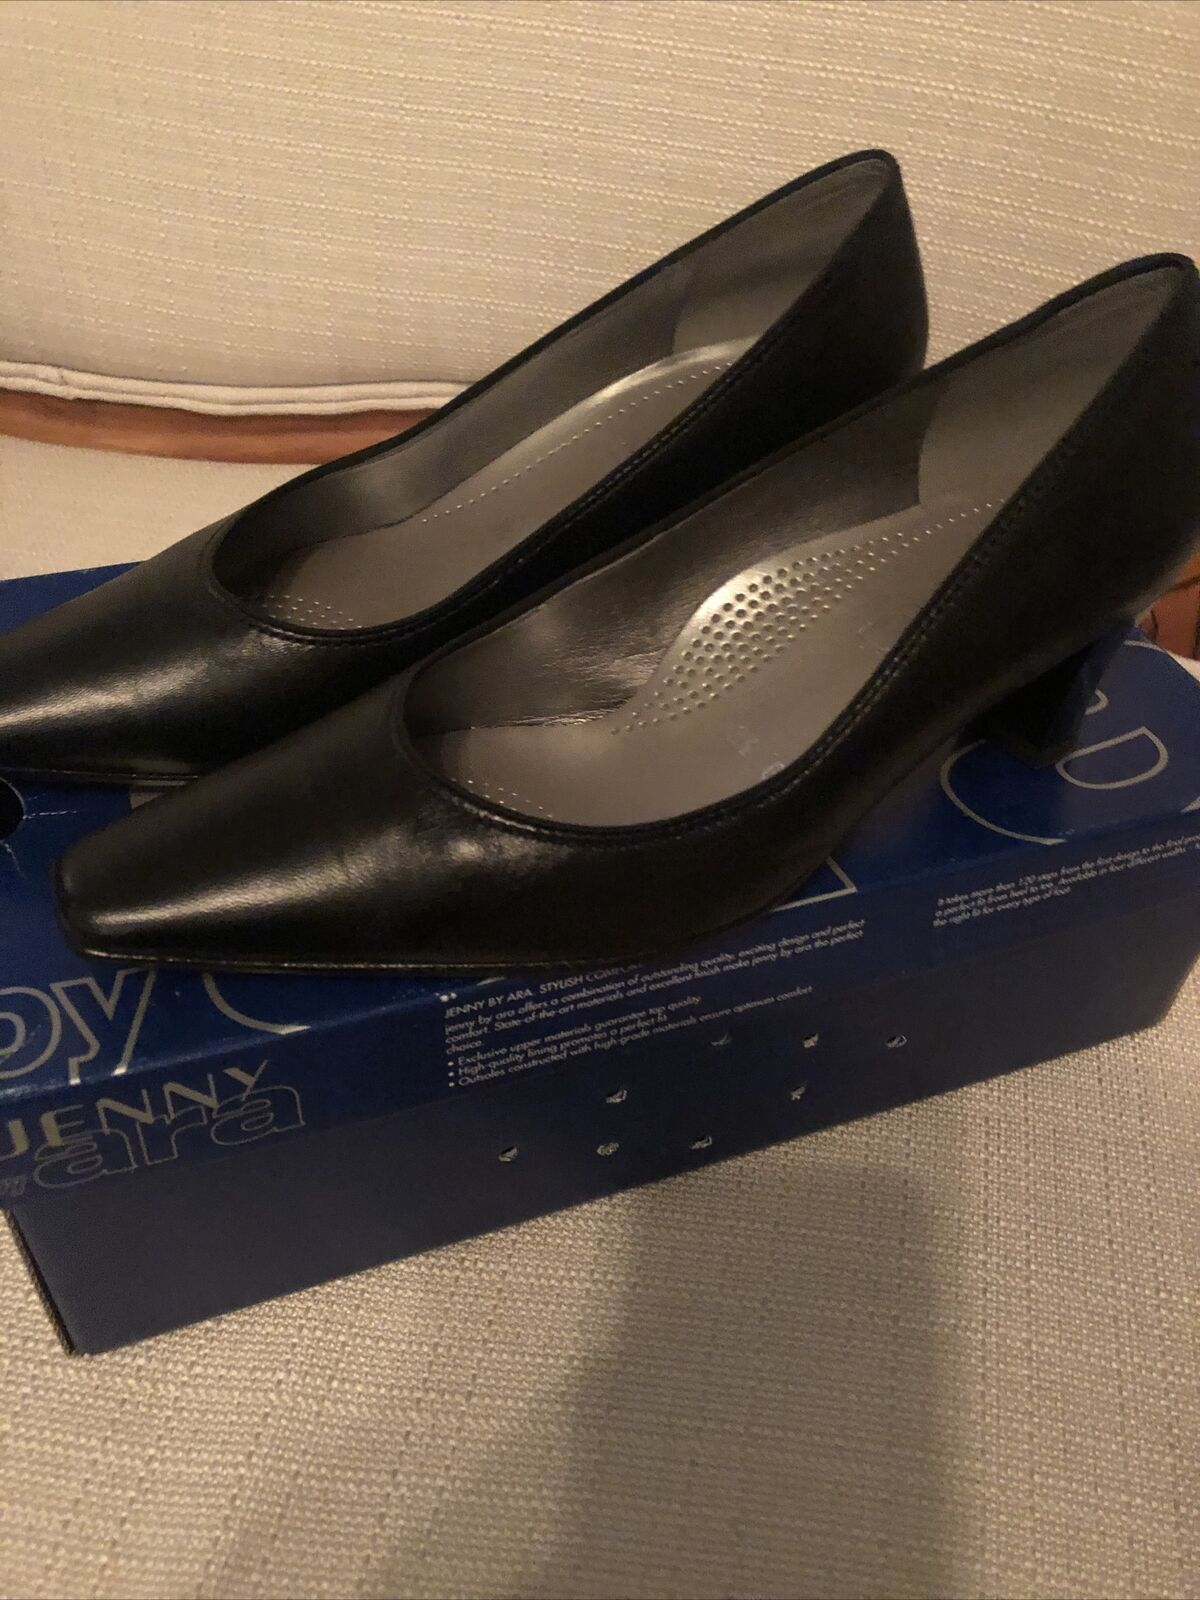 Jenny by Ara - Shoes Classics Ladies Leather Black UK3.5 - G-Very Good Condition